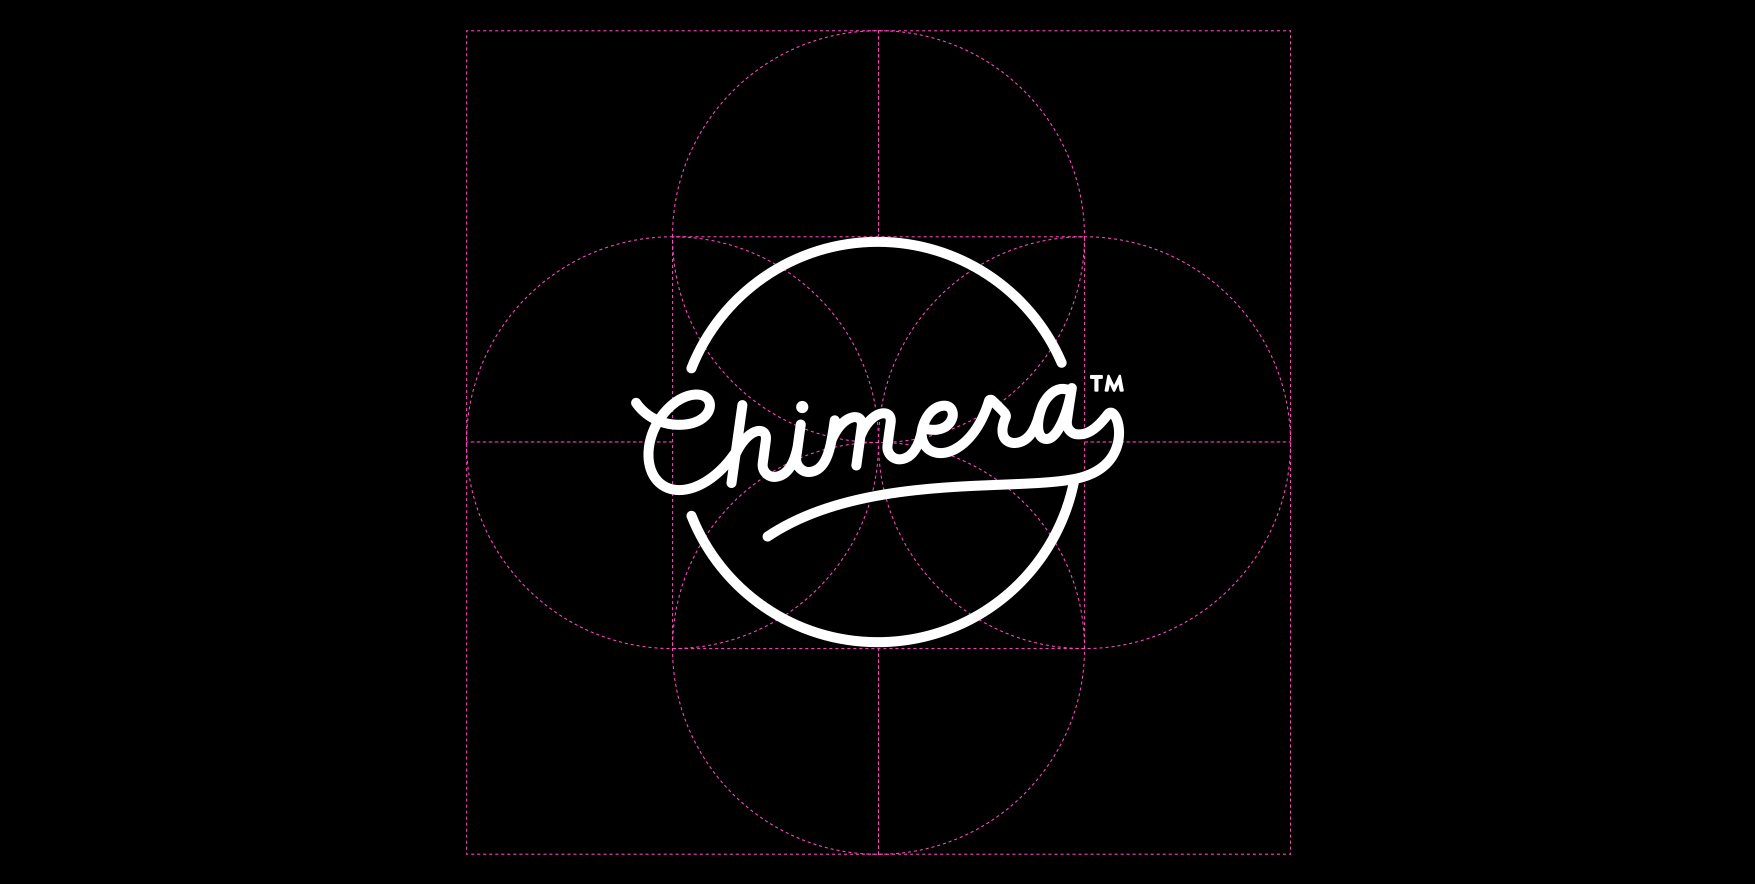 chimera-logo-diagram